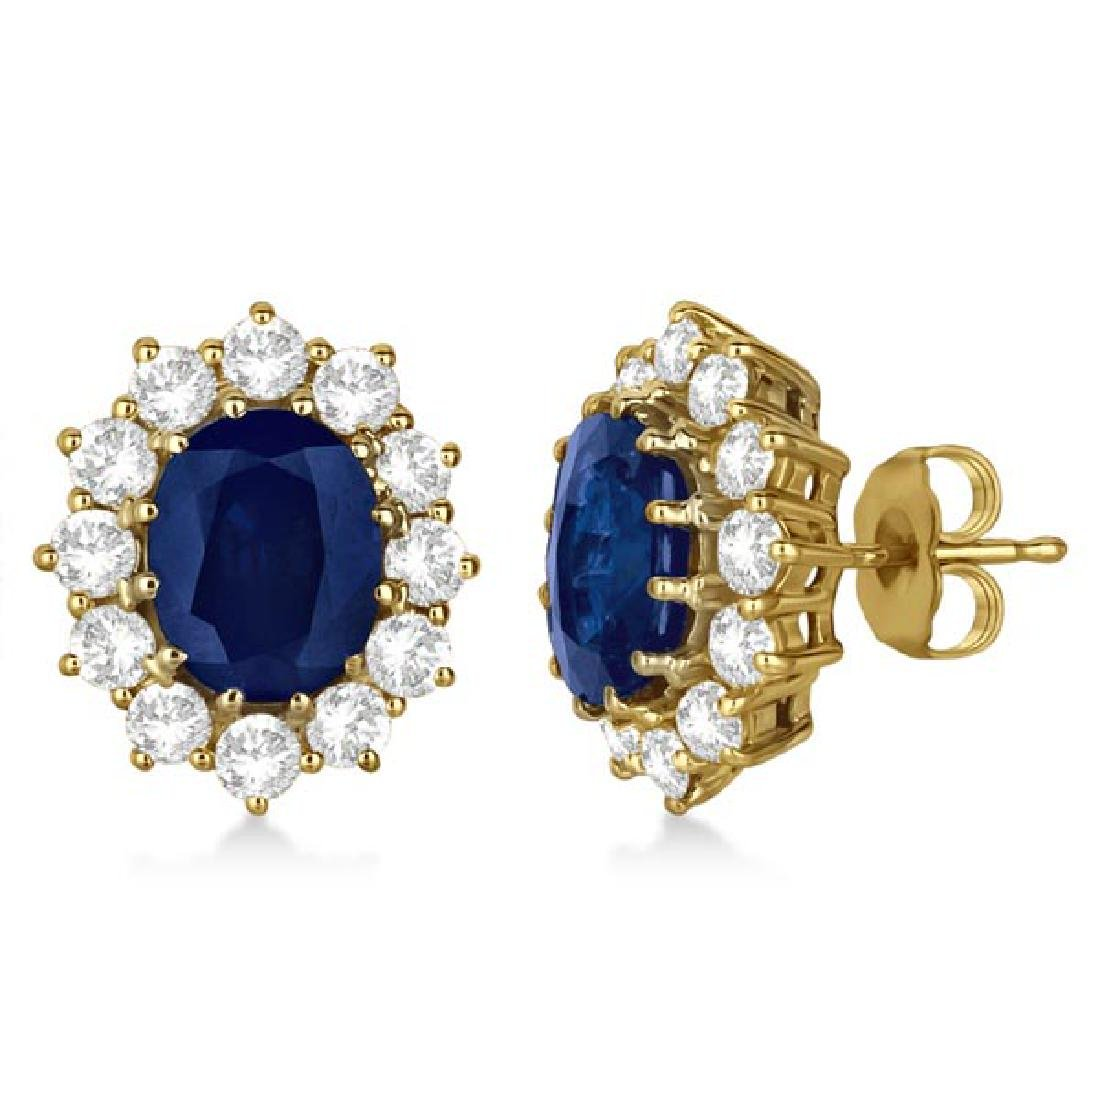 Oval Blue Sapphire and Diamond Accented Earrings 14k Ye